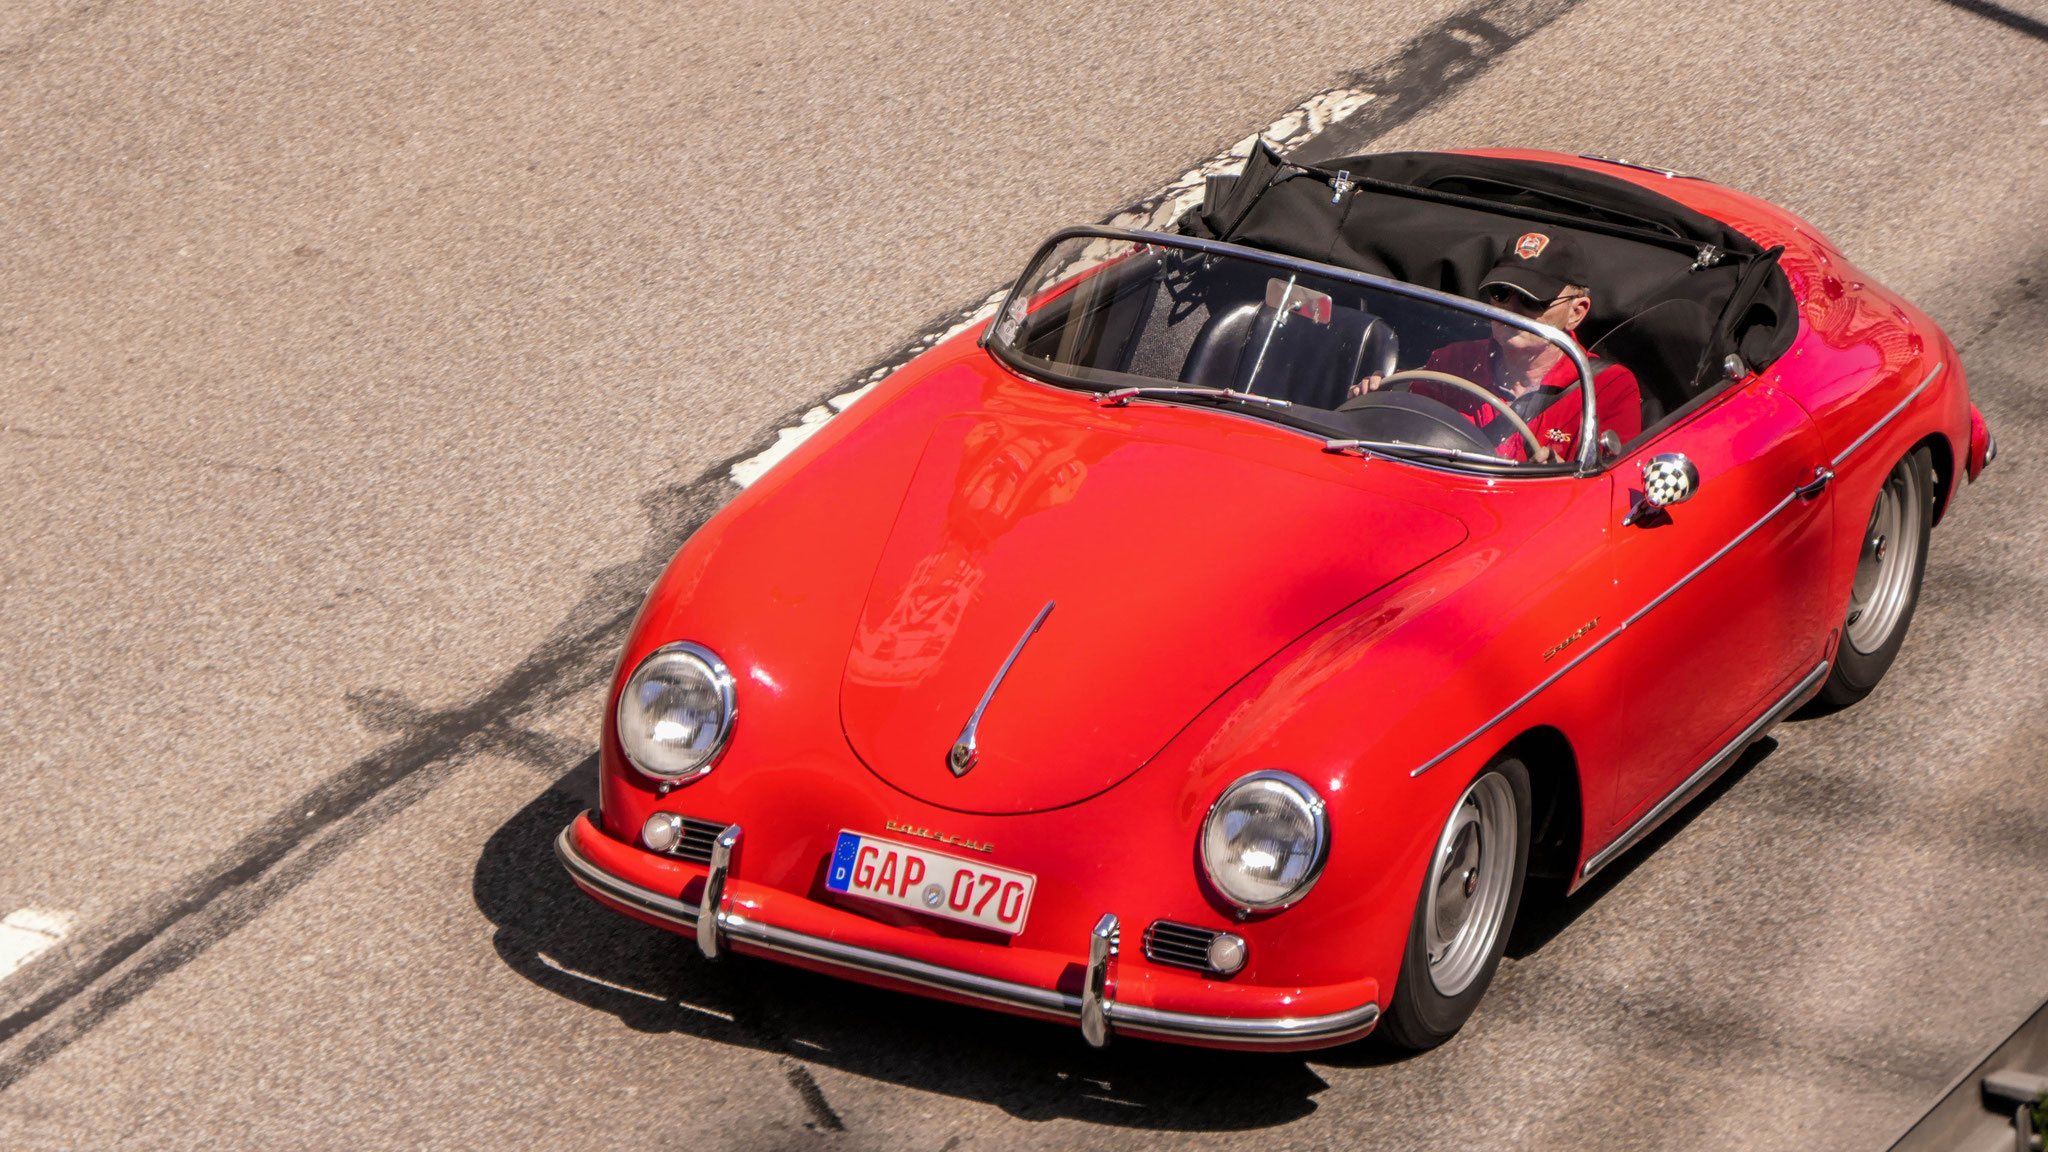 Porsche 356 1500 Speedster - GAP-070